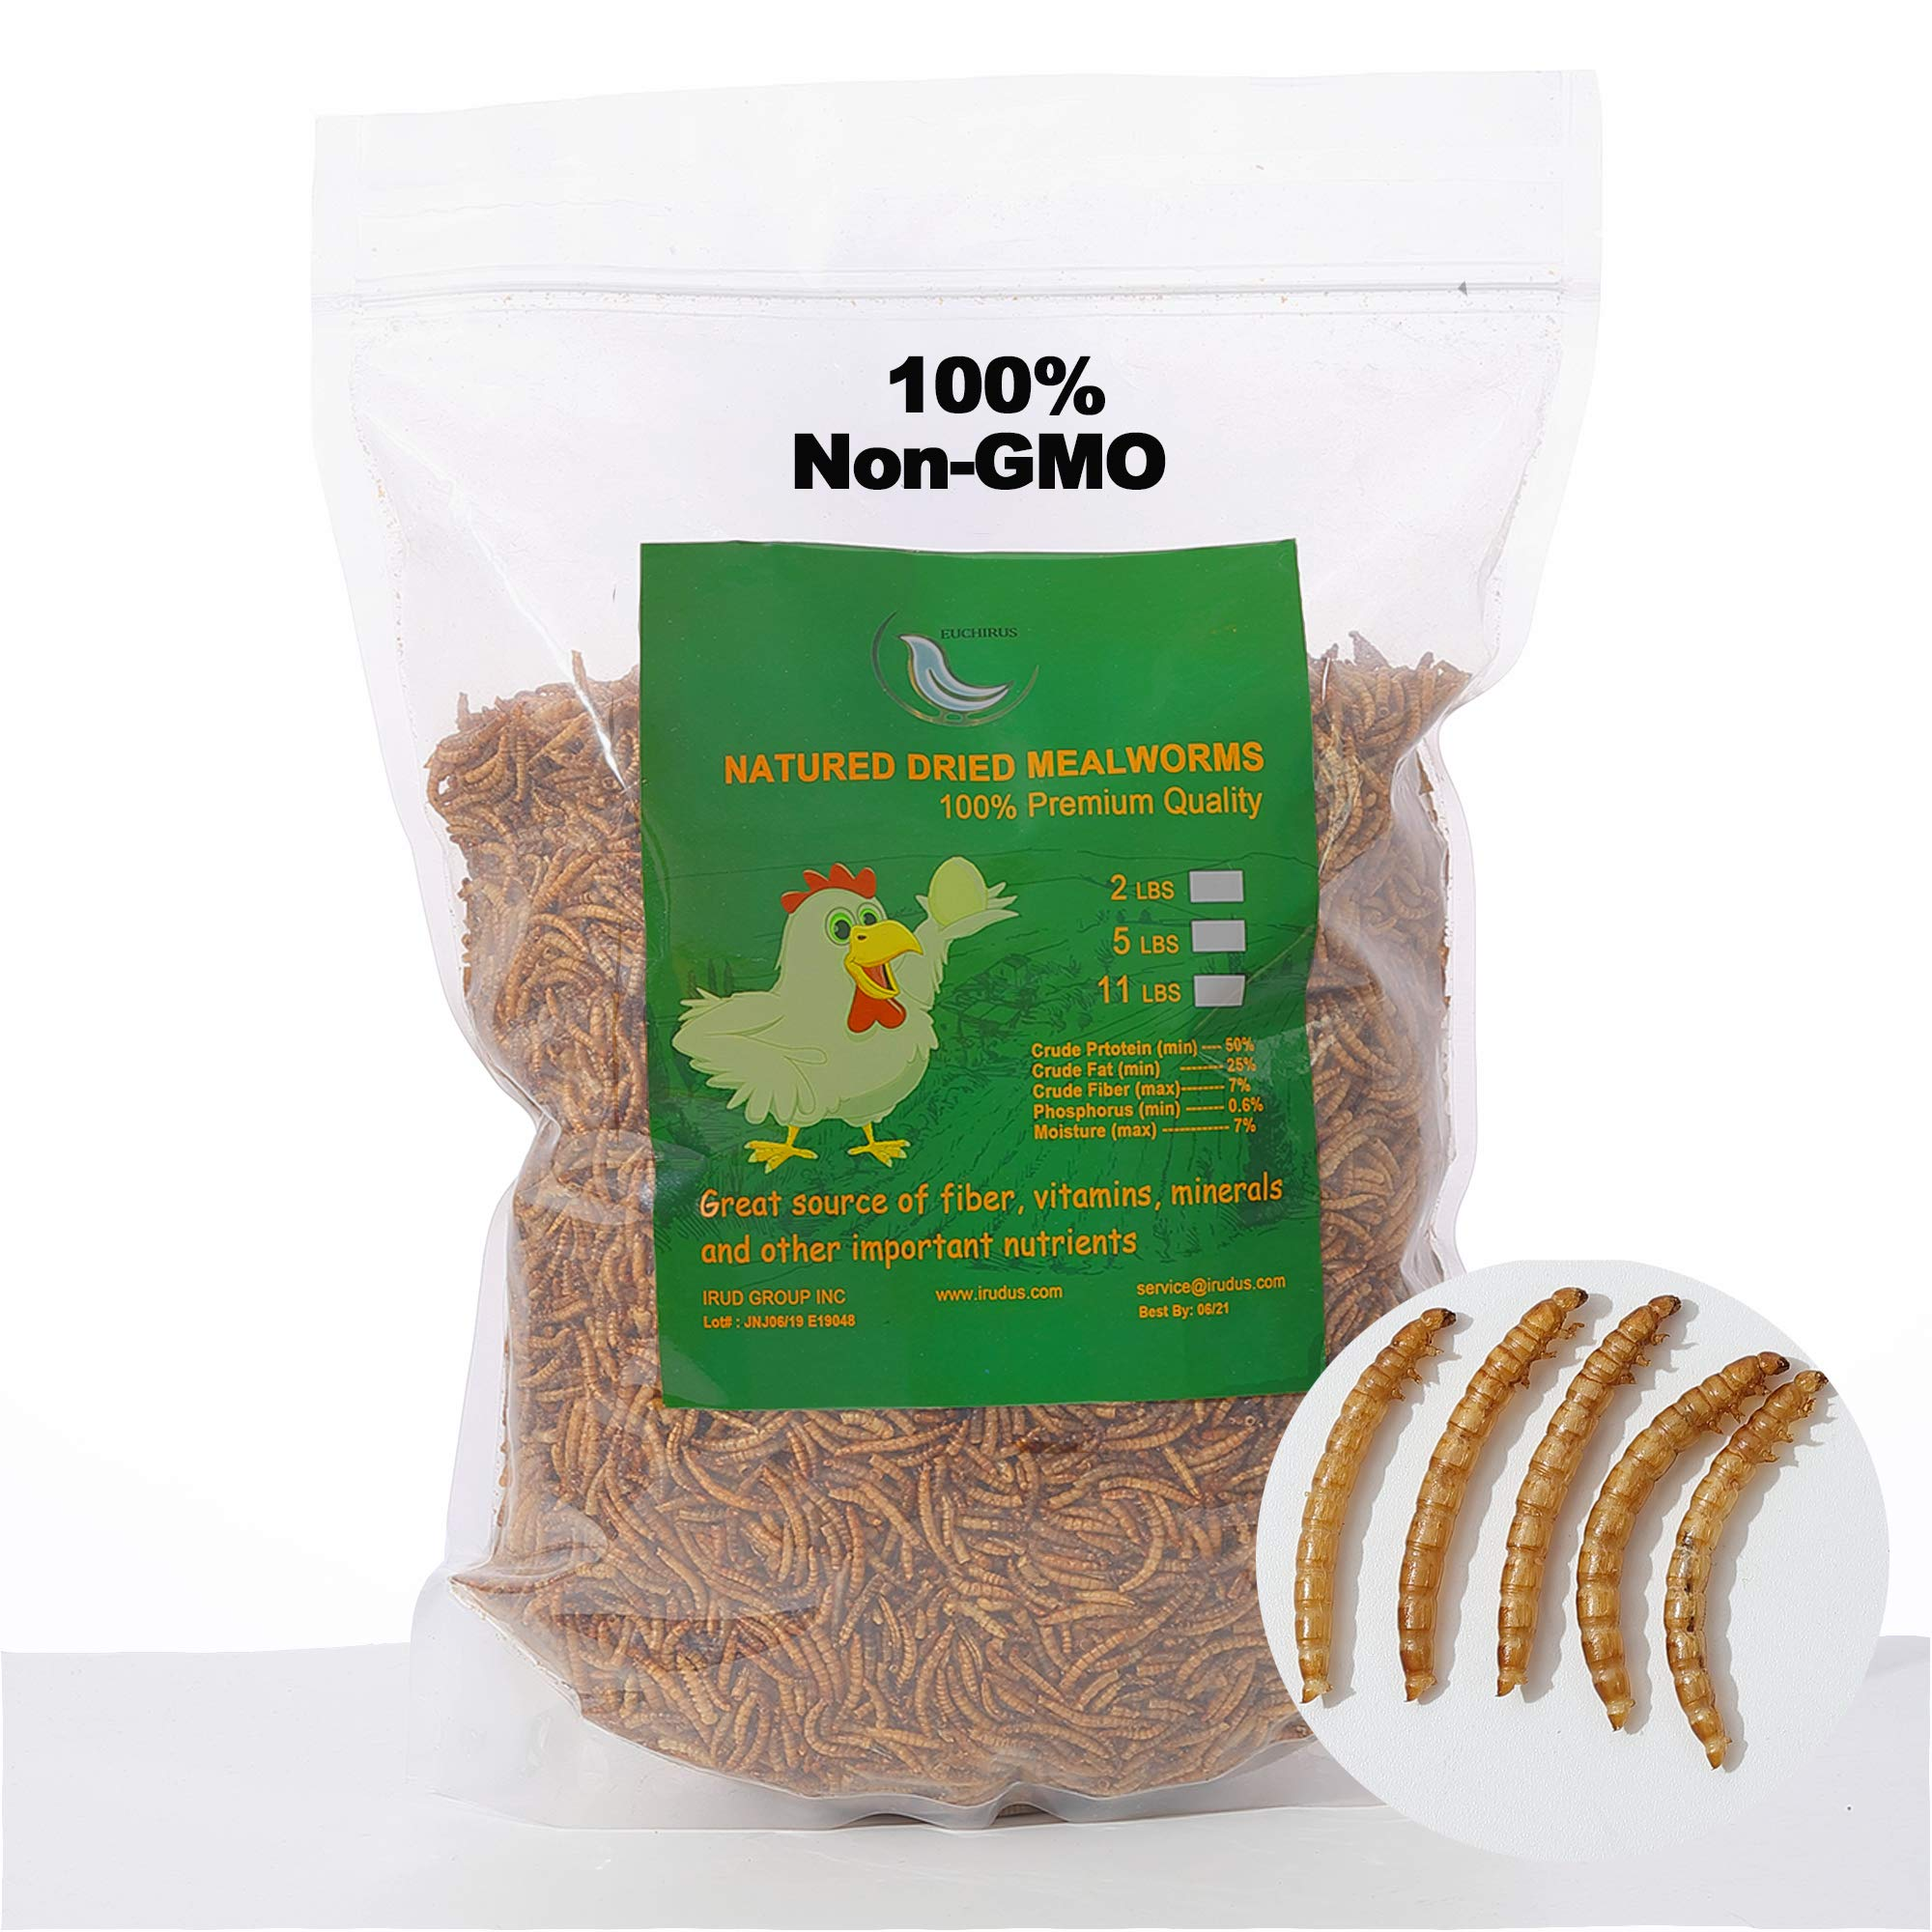 WAMSOFT 100% Non-GMO Dried Mealworms,High-Protein Mealworm Treats ,Perfect for Wild Bird Chicken Fish,11lb by WAMSOFT